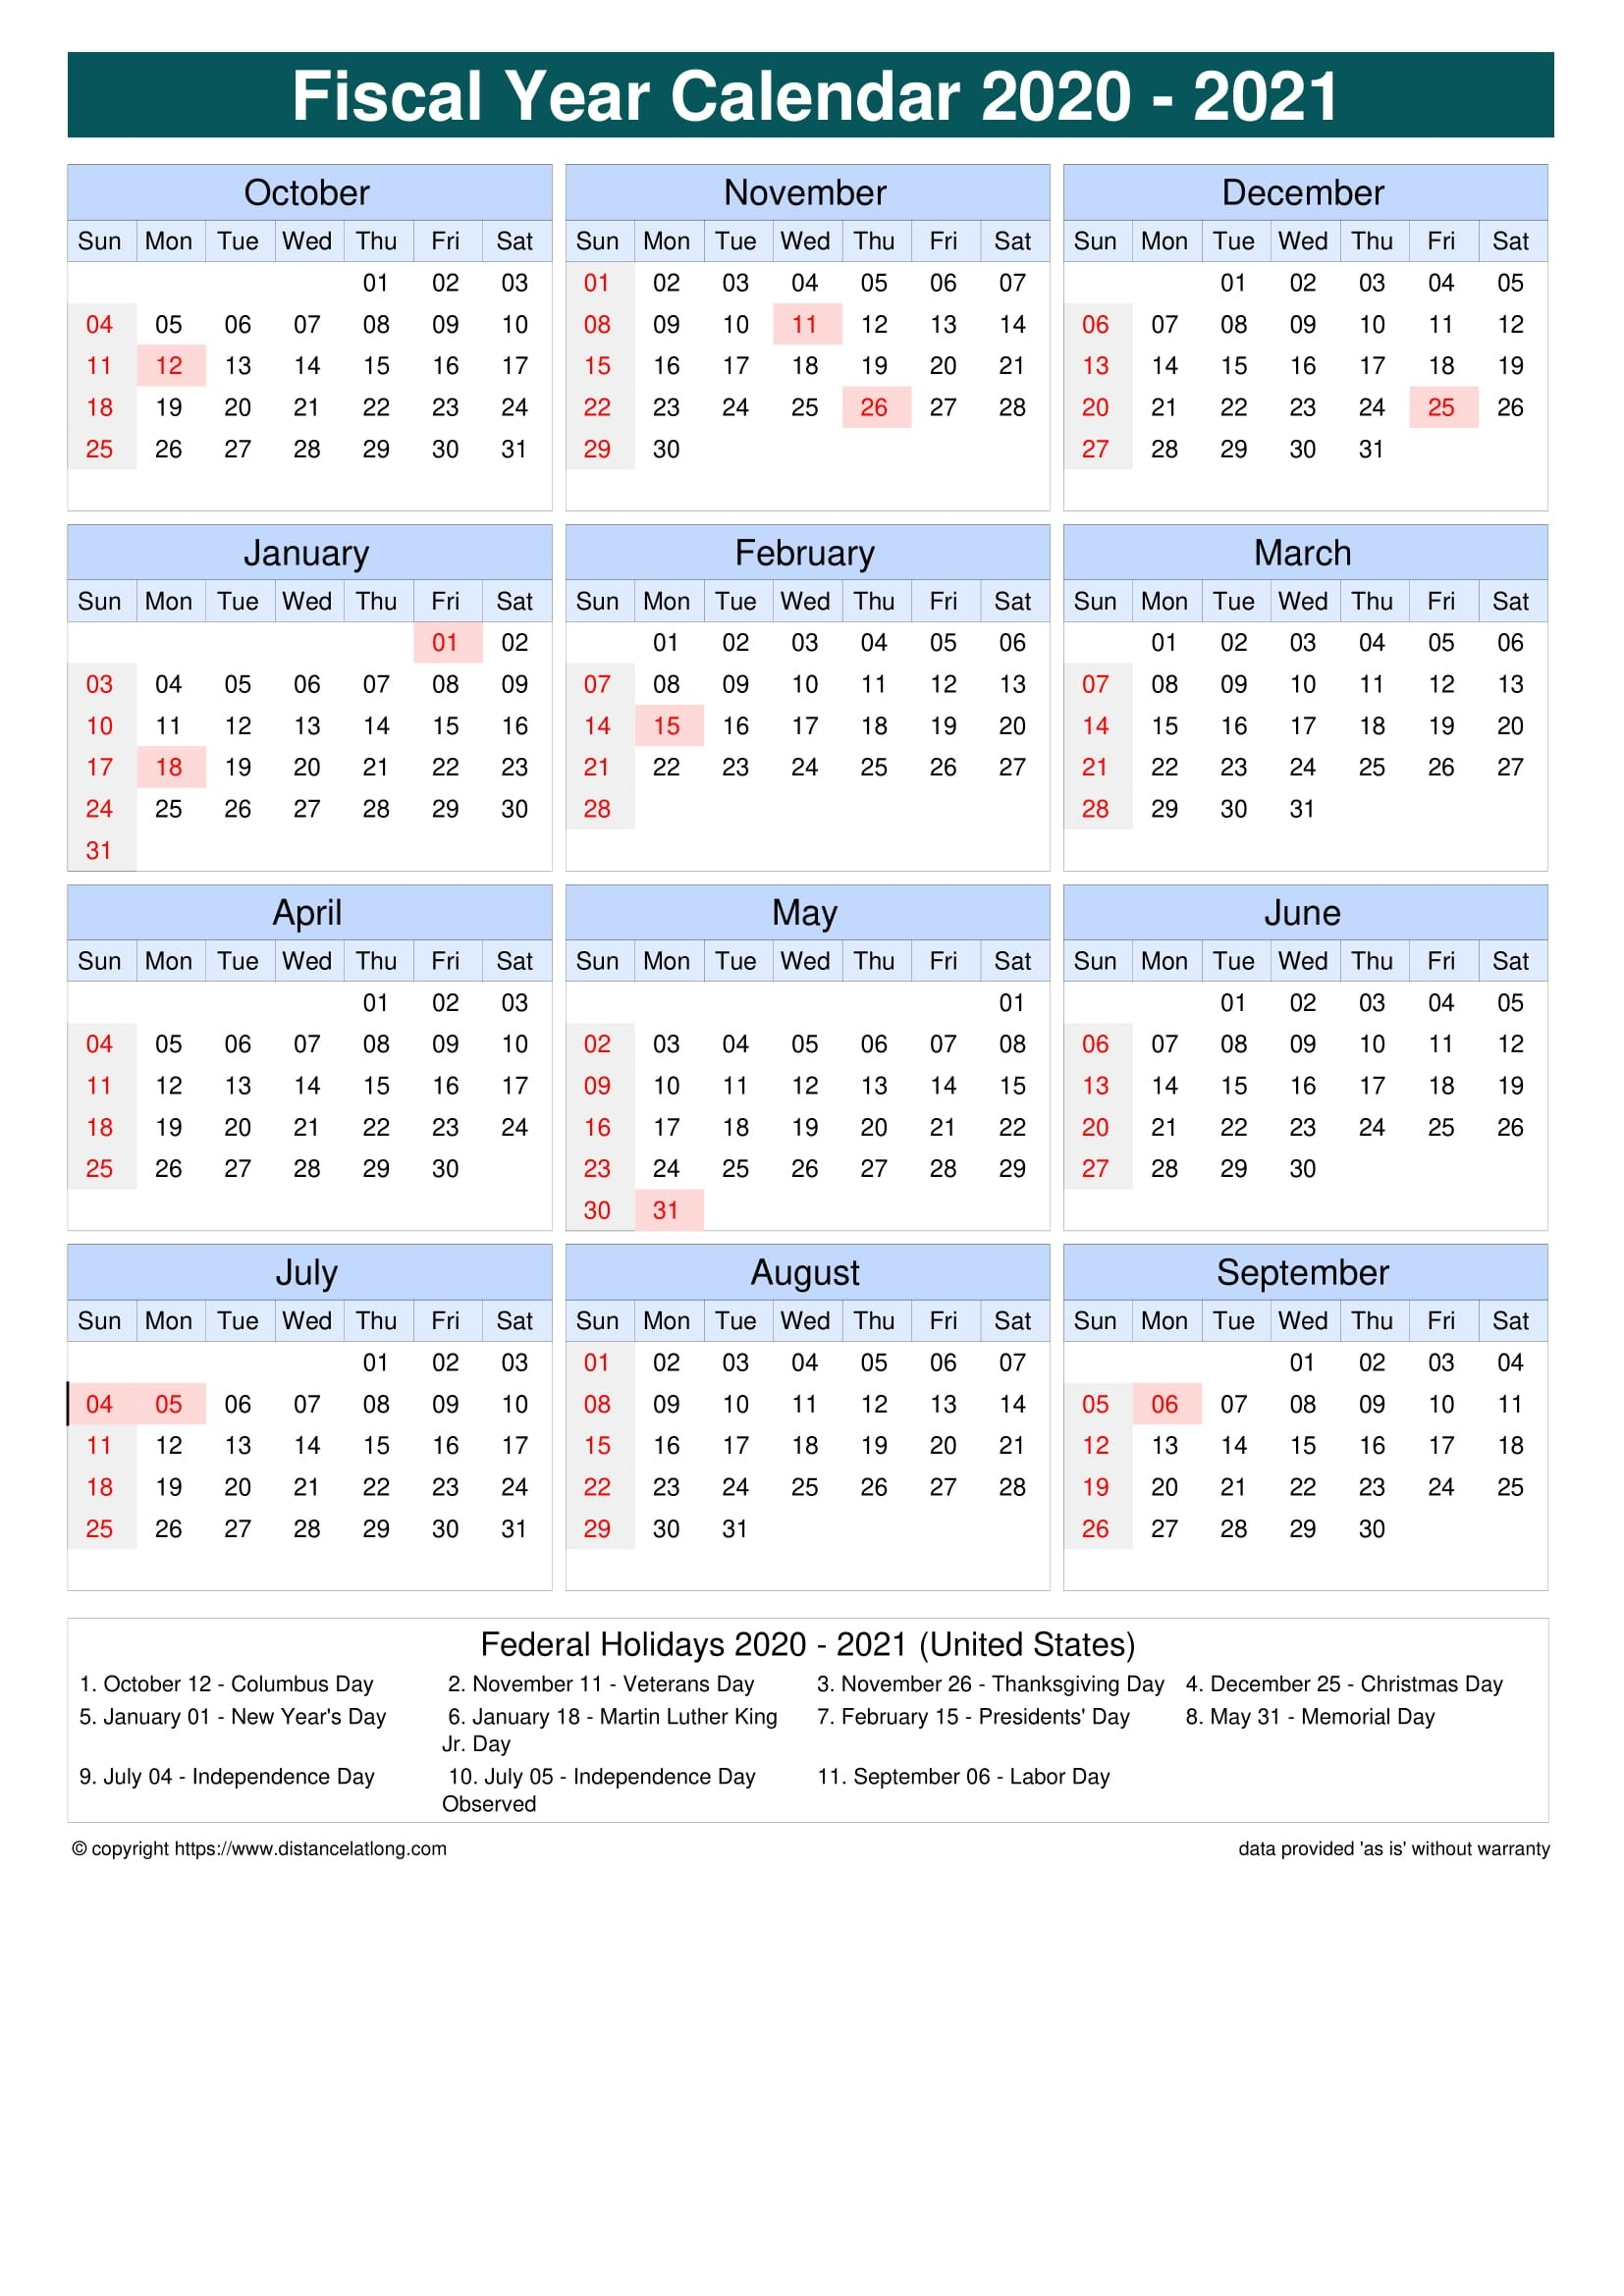 2021 19 Financial Calendar Printable - Template Calendar ...